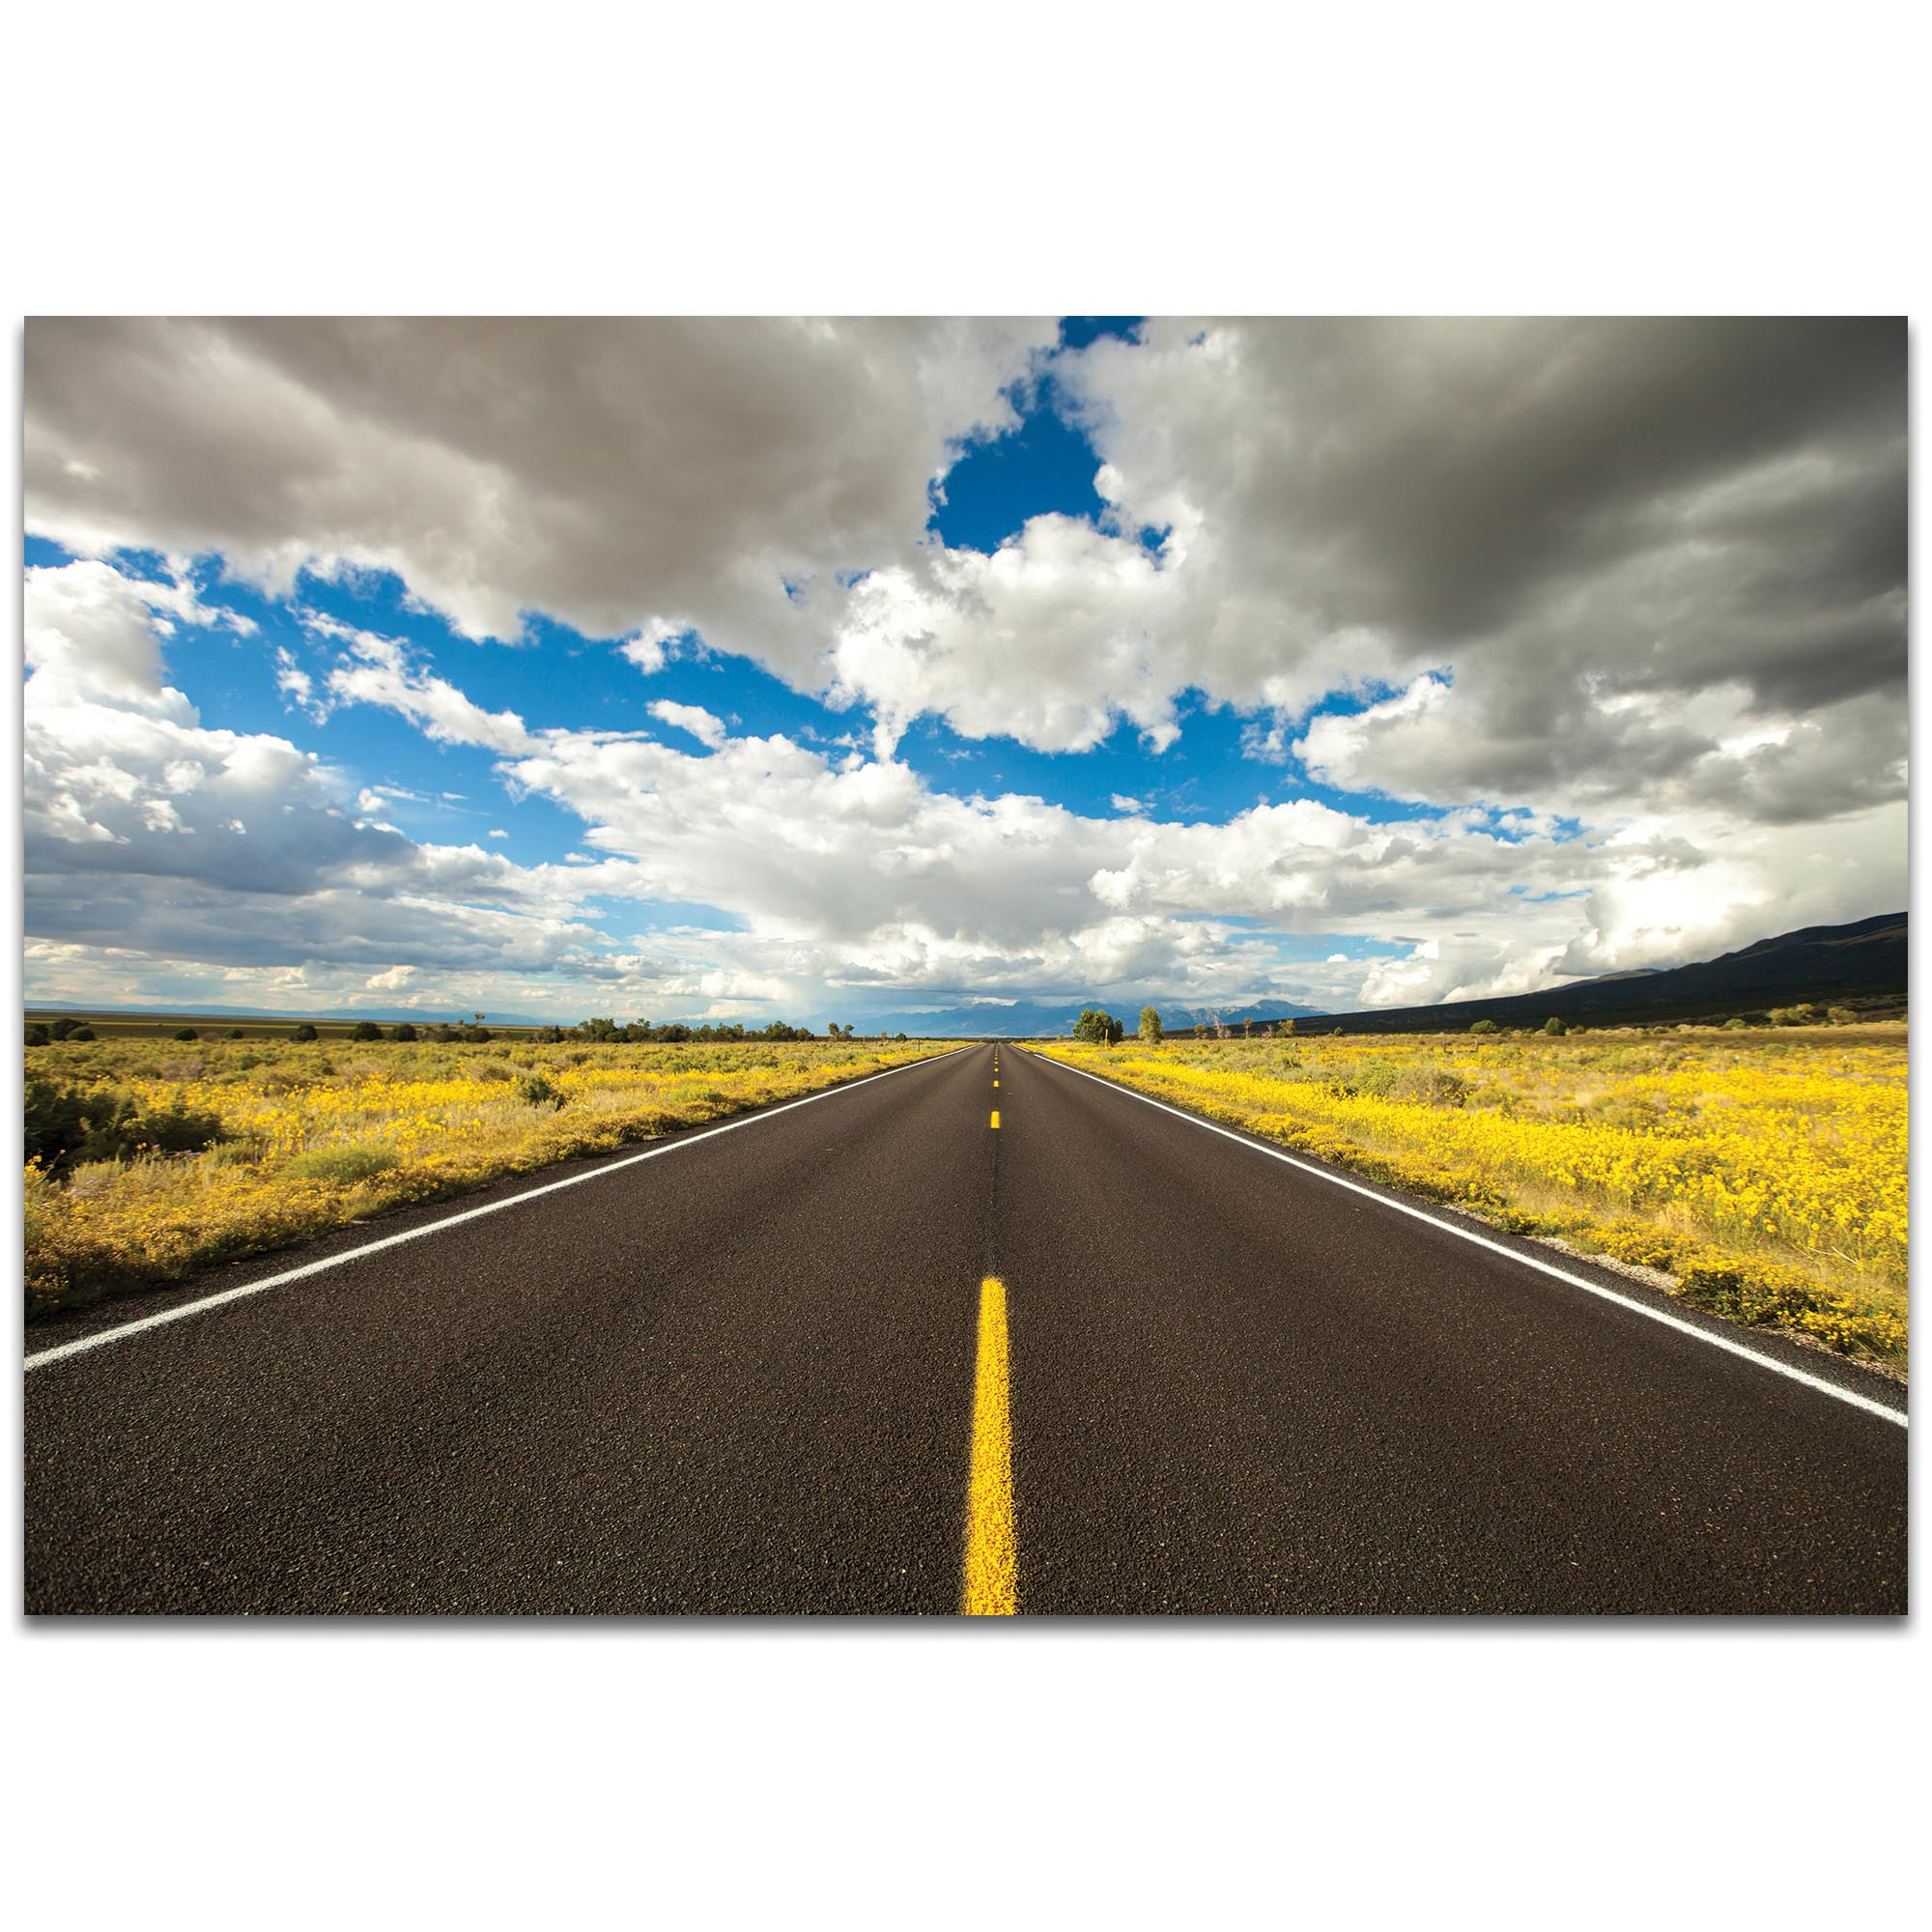 Americana Wall Art 'Road Trip' - Open Road Decor on Metal or Plexiglass